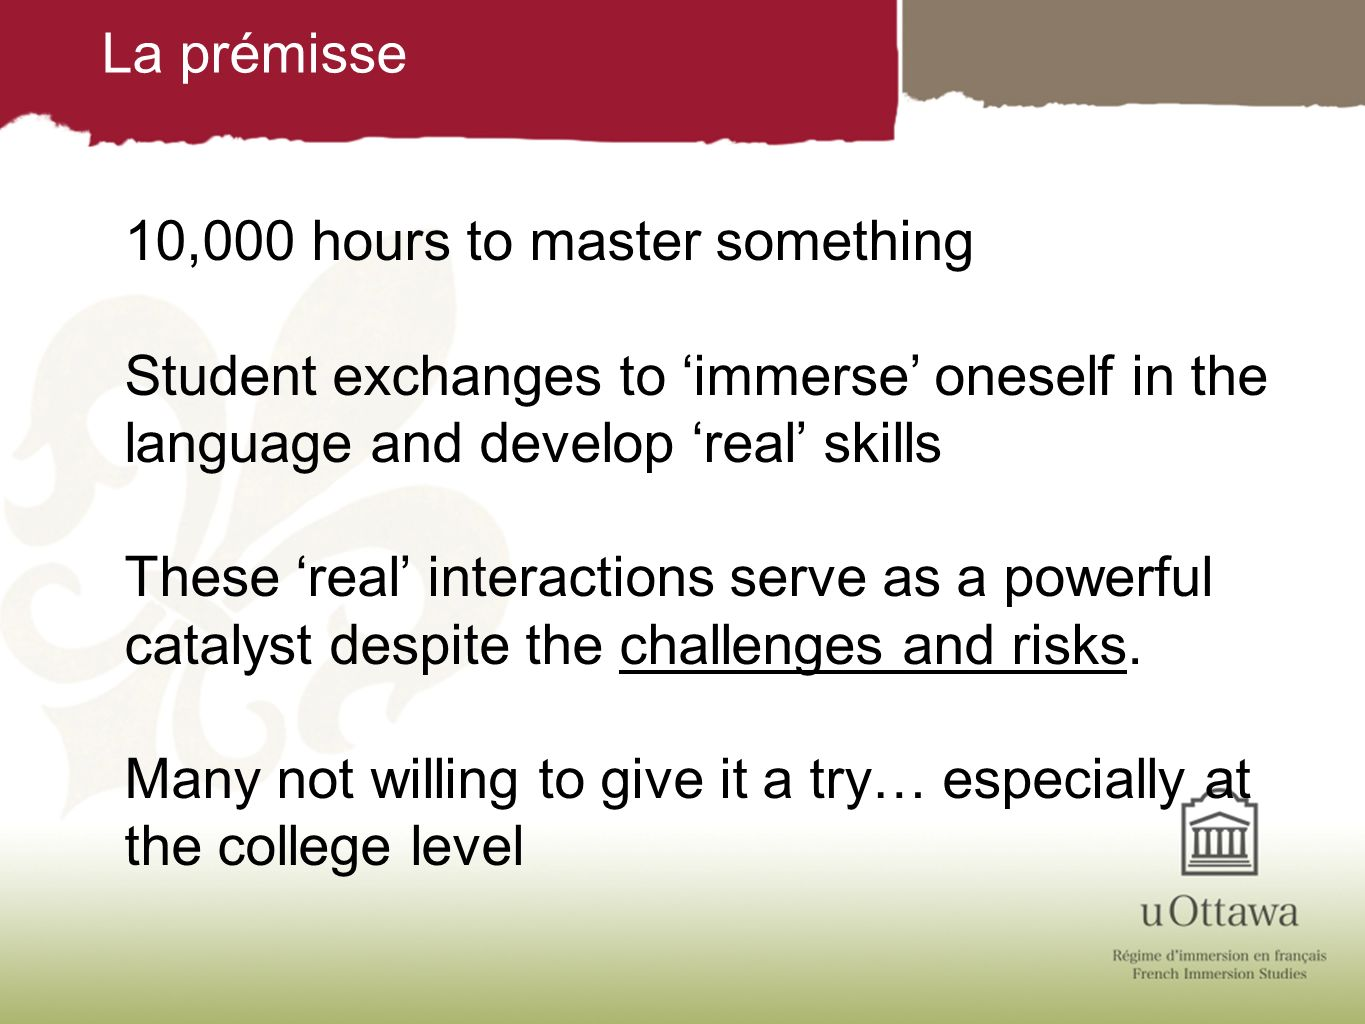 La prémisse 10,000 hours to master something. Student exchanges to 'immerse' oneself in the language and develop 'real' skills.